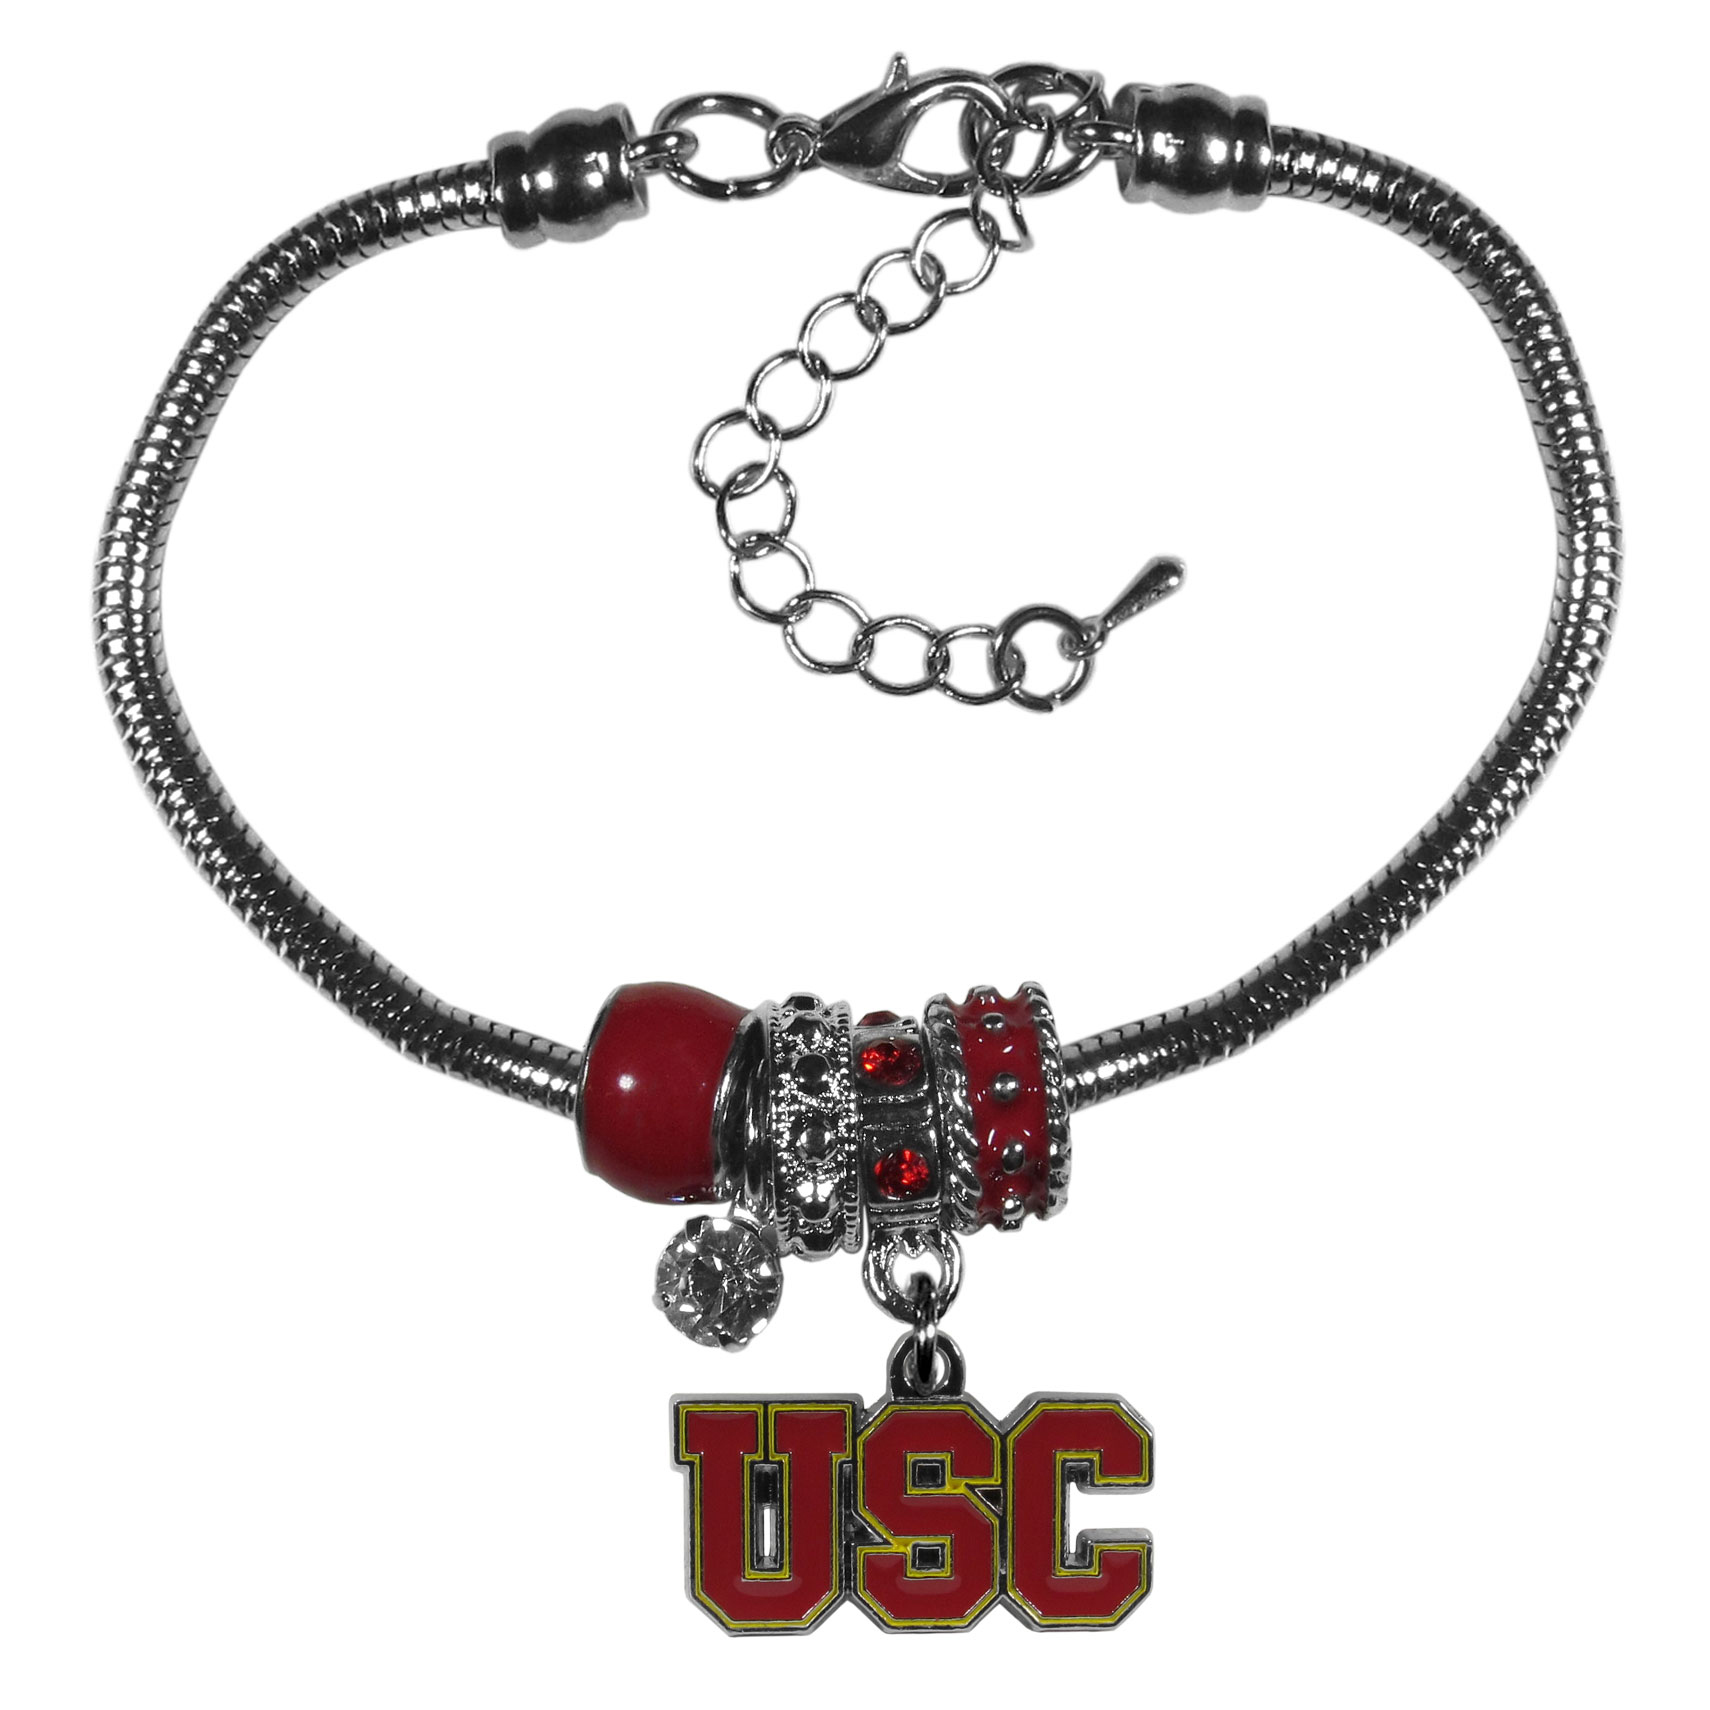 USC Trojans Euro Bead Bracelet - We have combined the wildly popular Euro style beads with your favorite team to create our  USC Trojans bead bracelet. The 7.5 inch snake chain with 2 inch extender features 4 Euro beads with enameled team colors and rhinestone accents with a high polish, nickel free charm and rhinestone charm. Perfect way to show off your team pride.